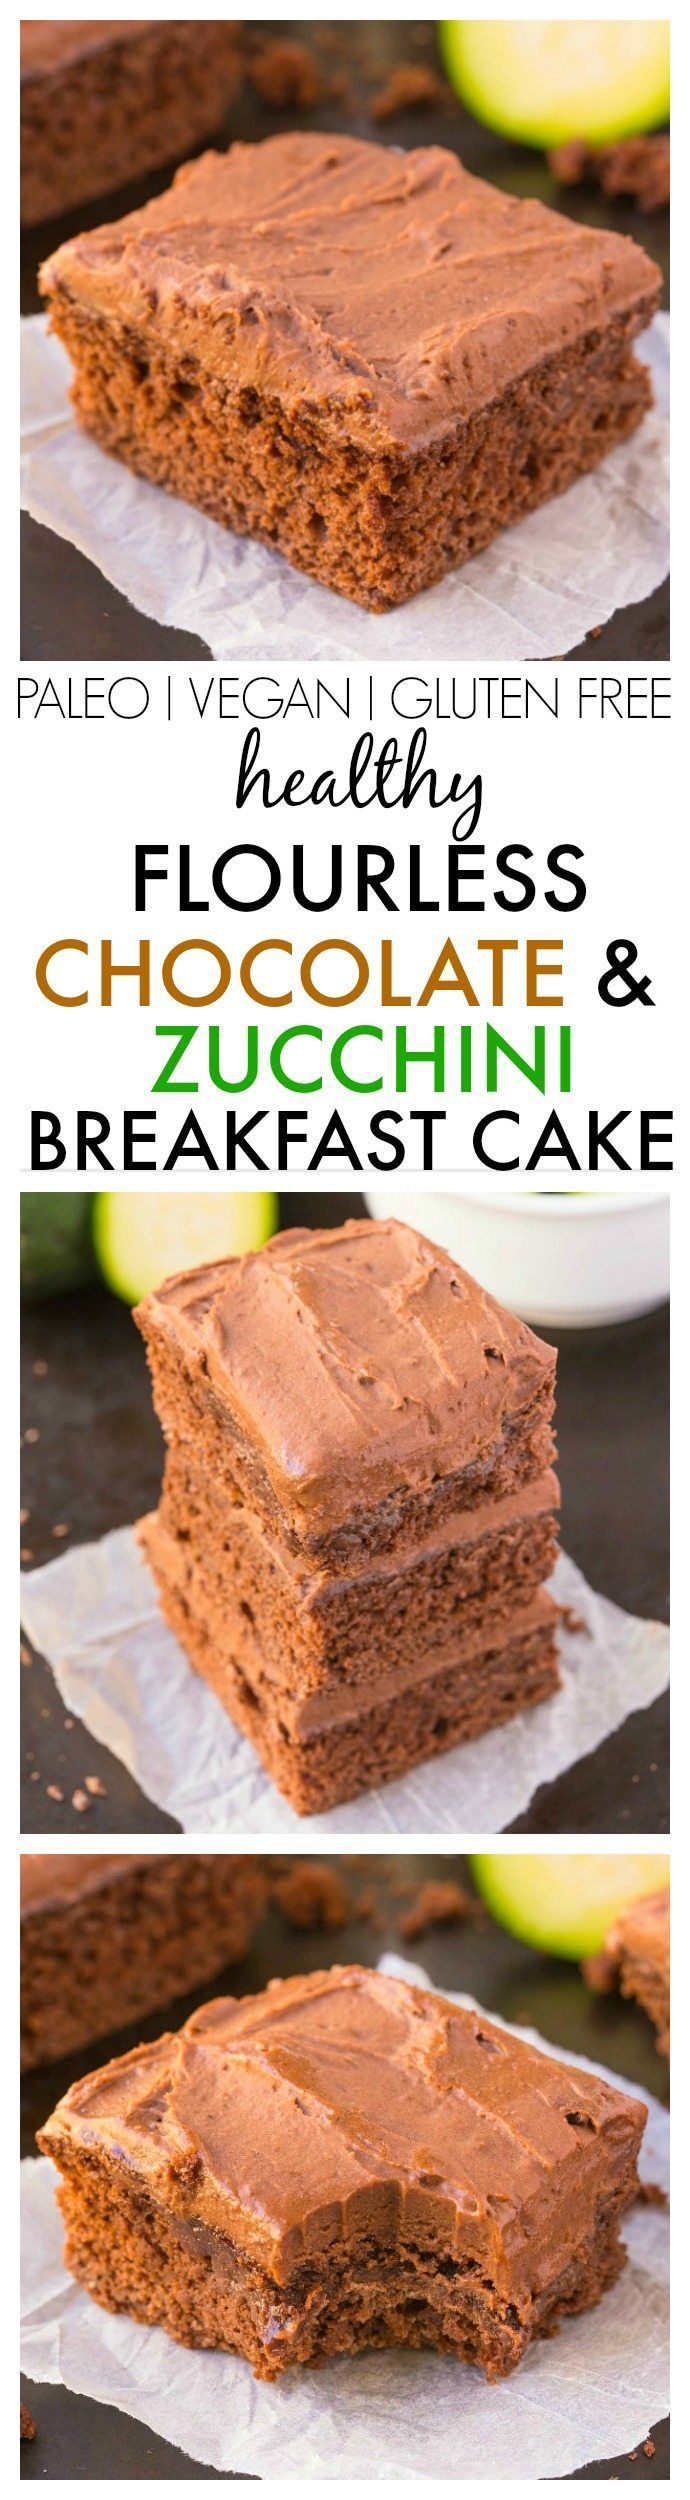 Healthy Flourless Chocolate Zucchini Breakfast Cake to keep you satisfied for hours! Tastes like a classic chocolate cake but made with NO butter, oil, flour or sugar AND an extra boost of veggies! {vegan, gluten free, paleo recipe}- thebigmansworld.com